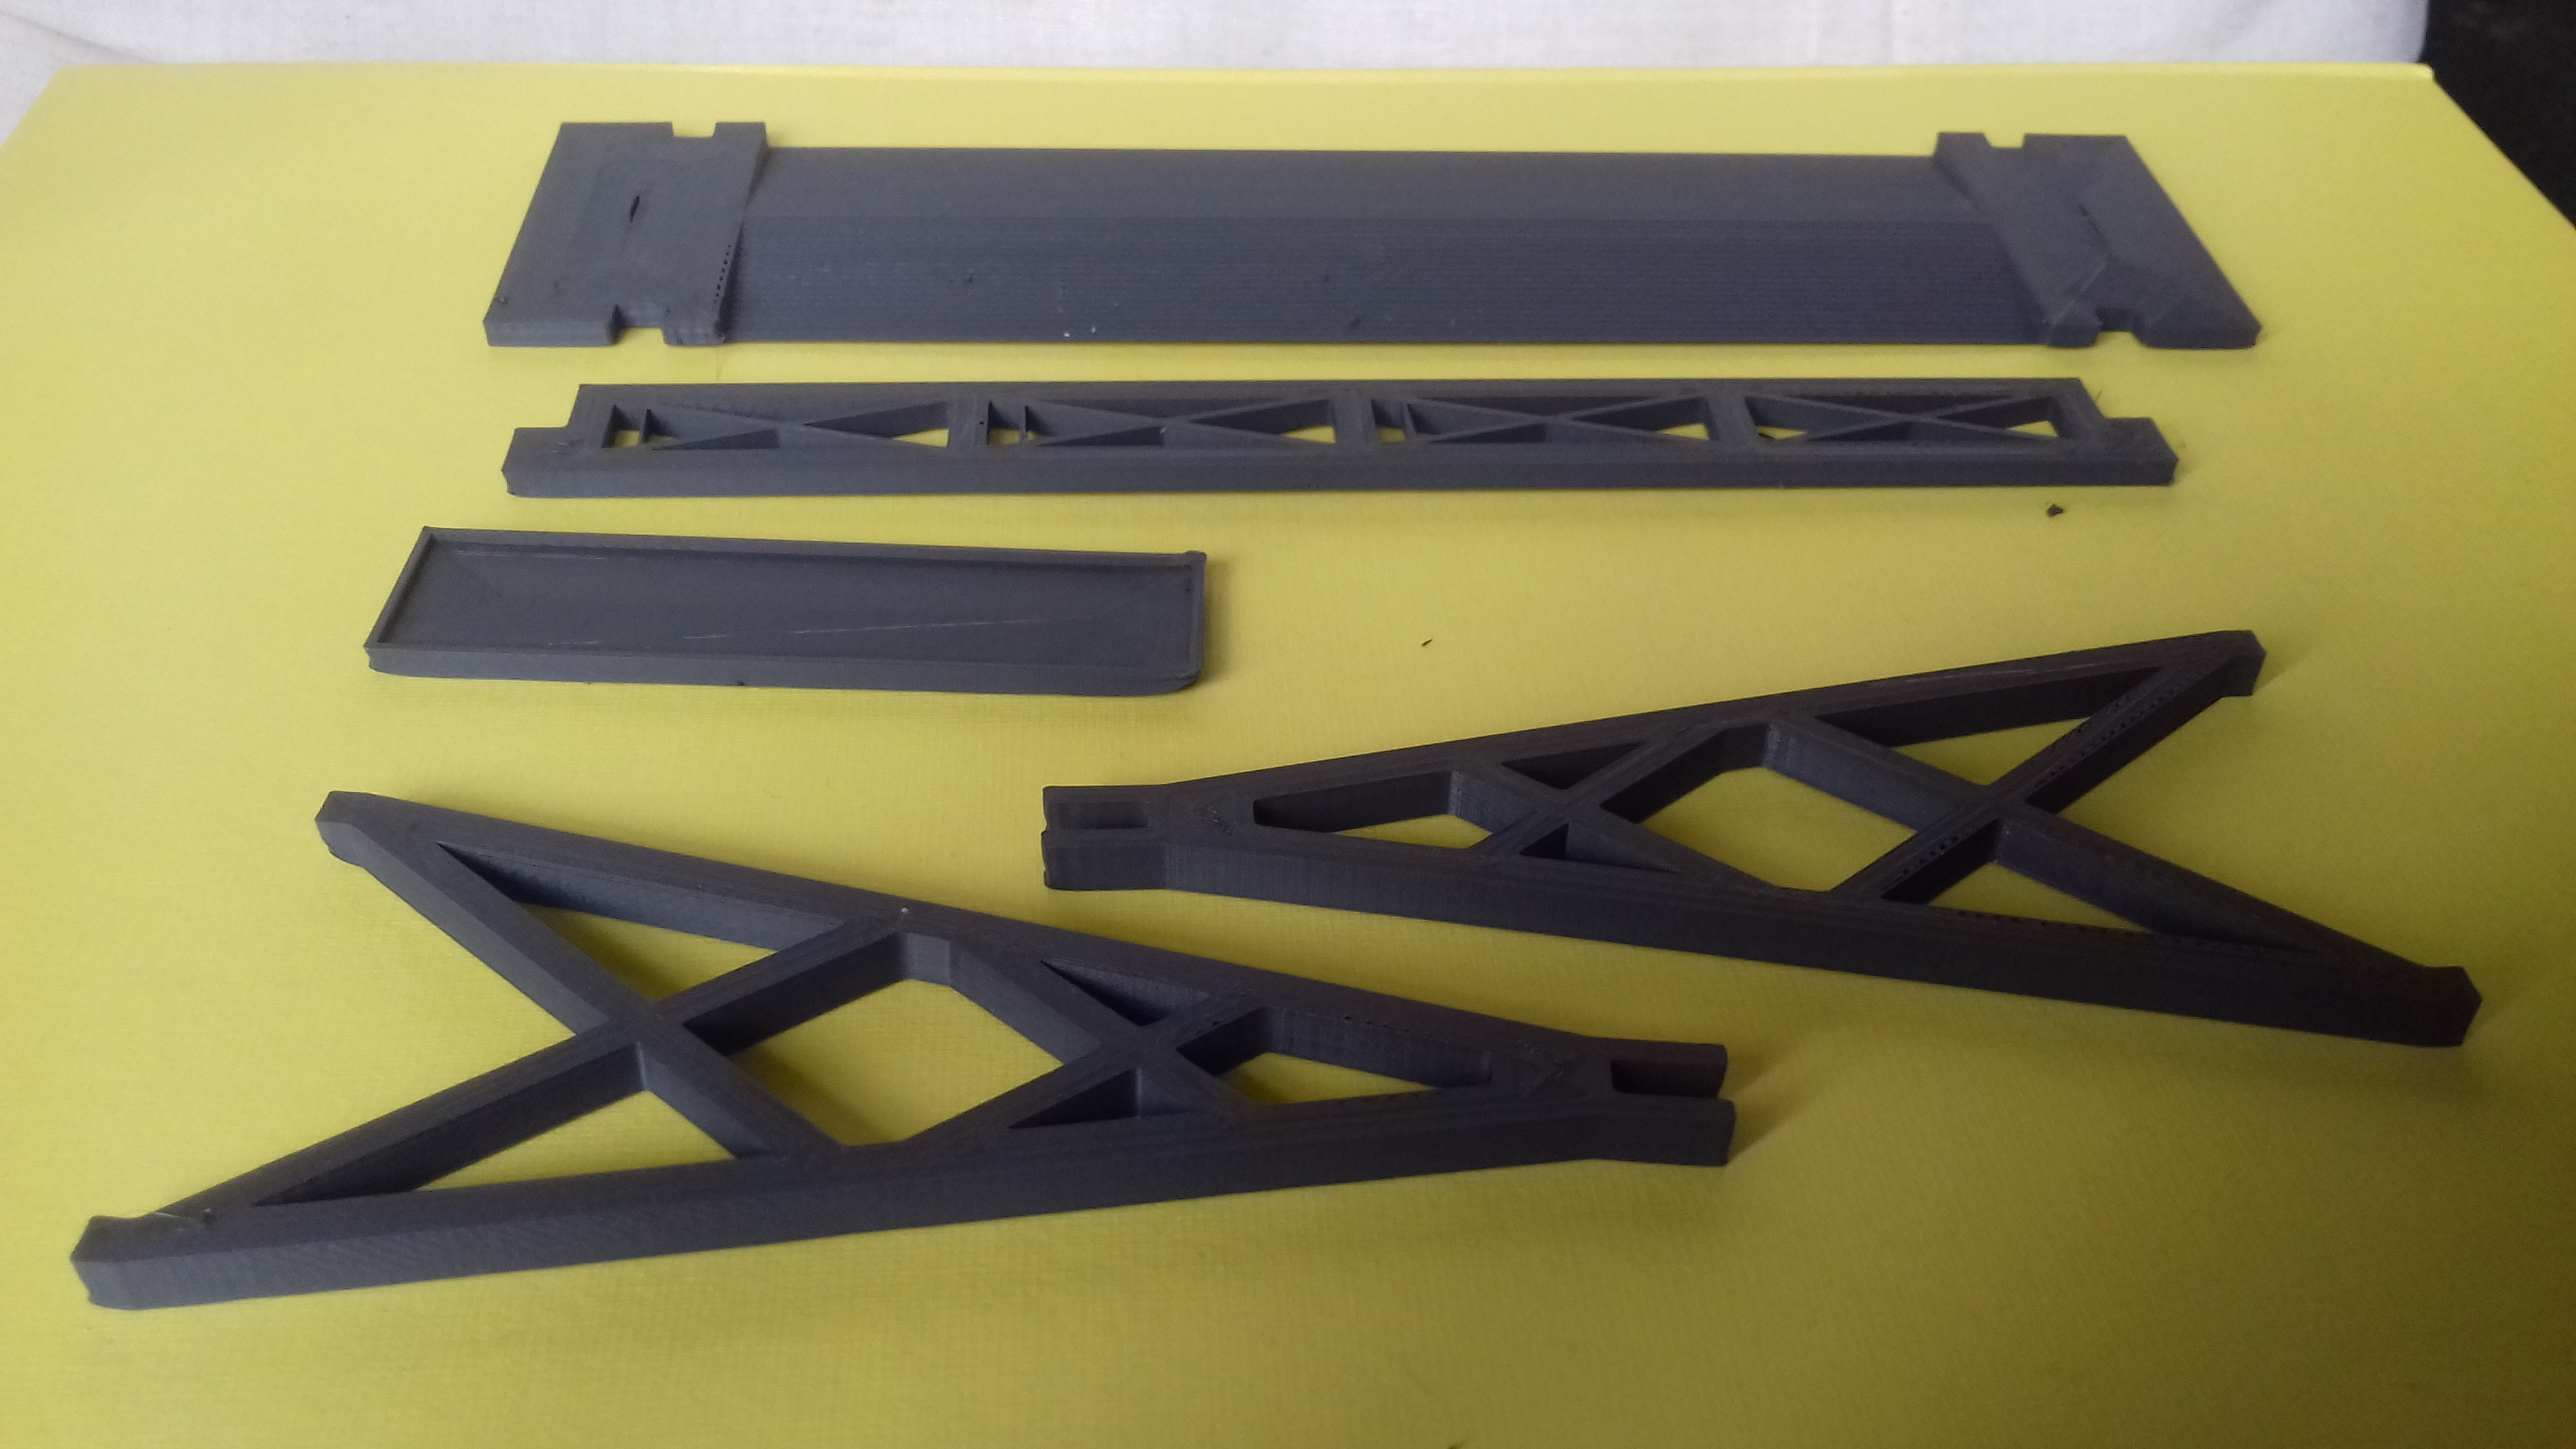 20180828_163235.jpg Download free STL file Gaslands Simple Gantry Gate • 3D printer model, Wrecker